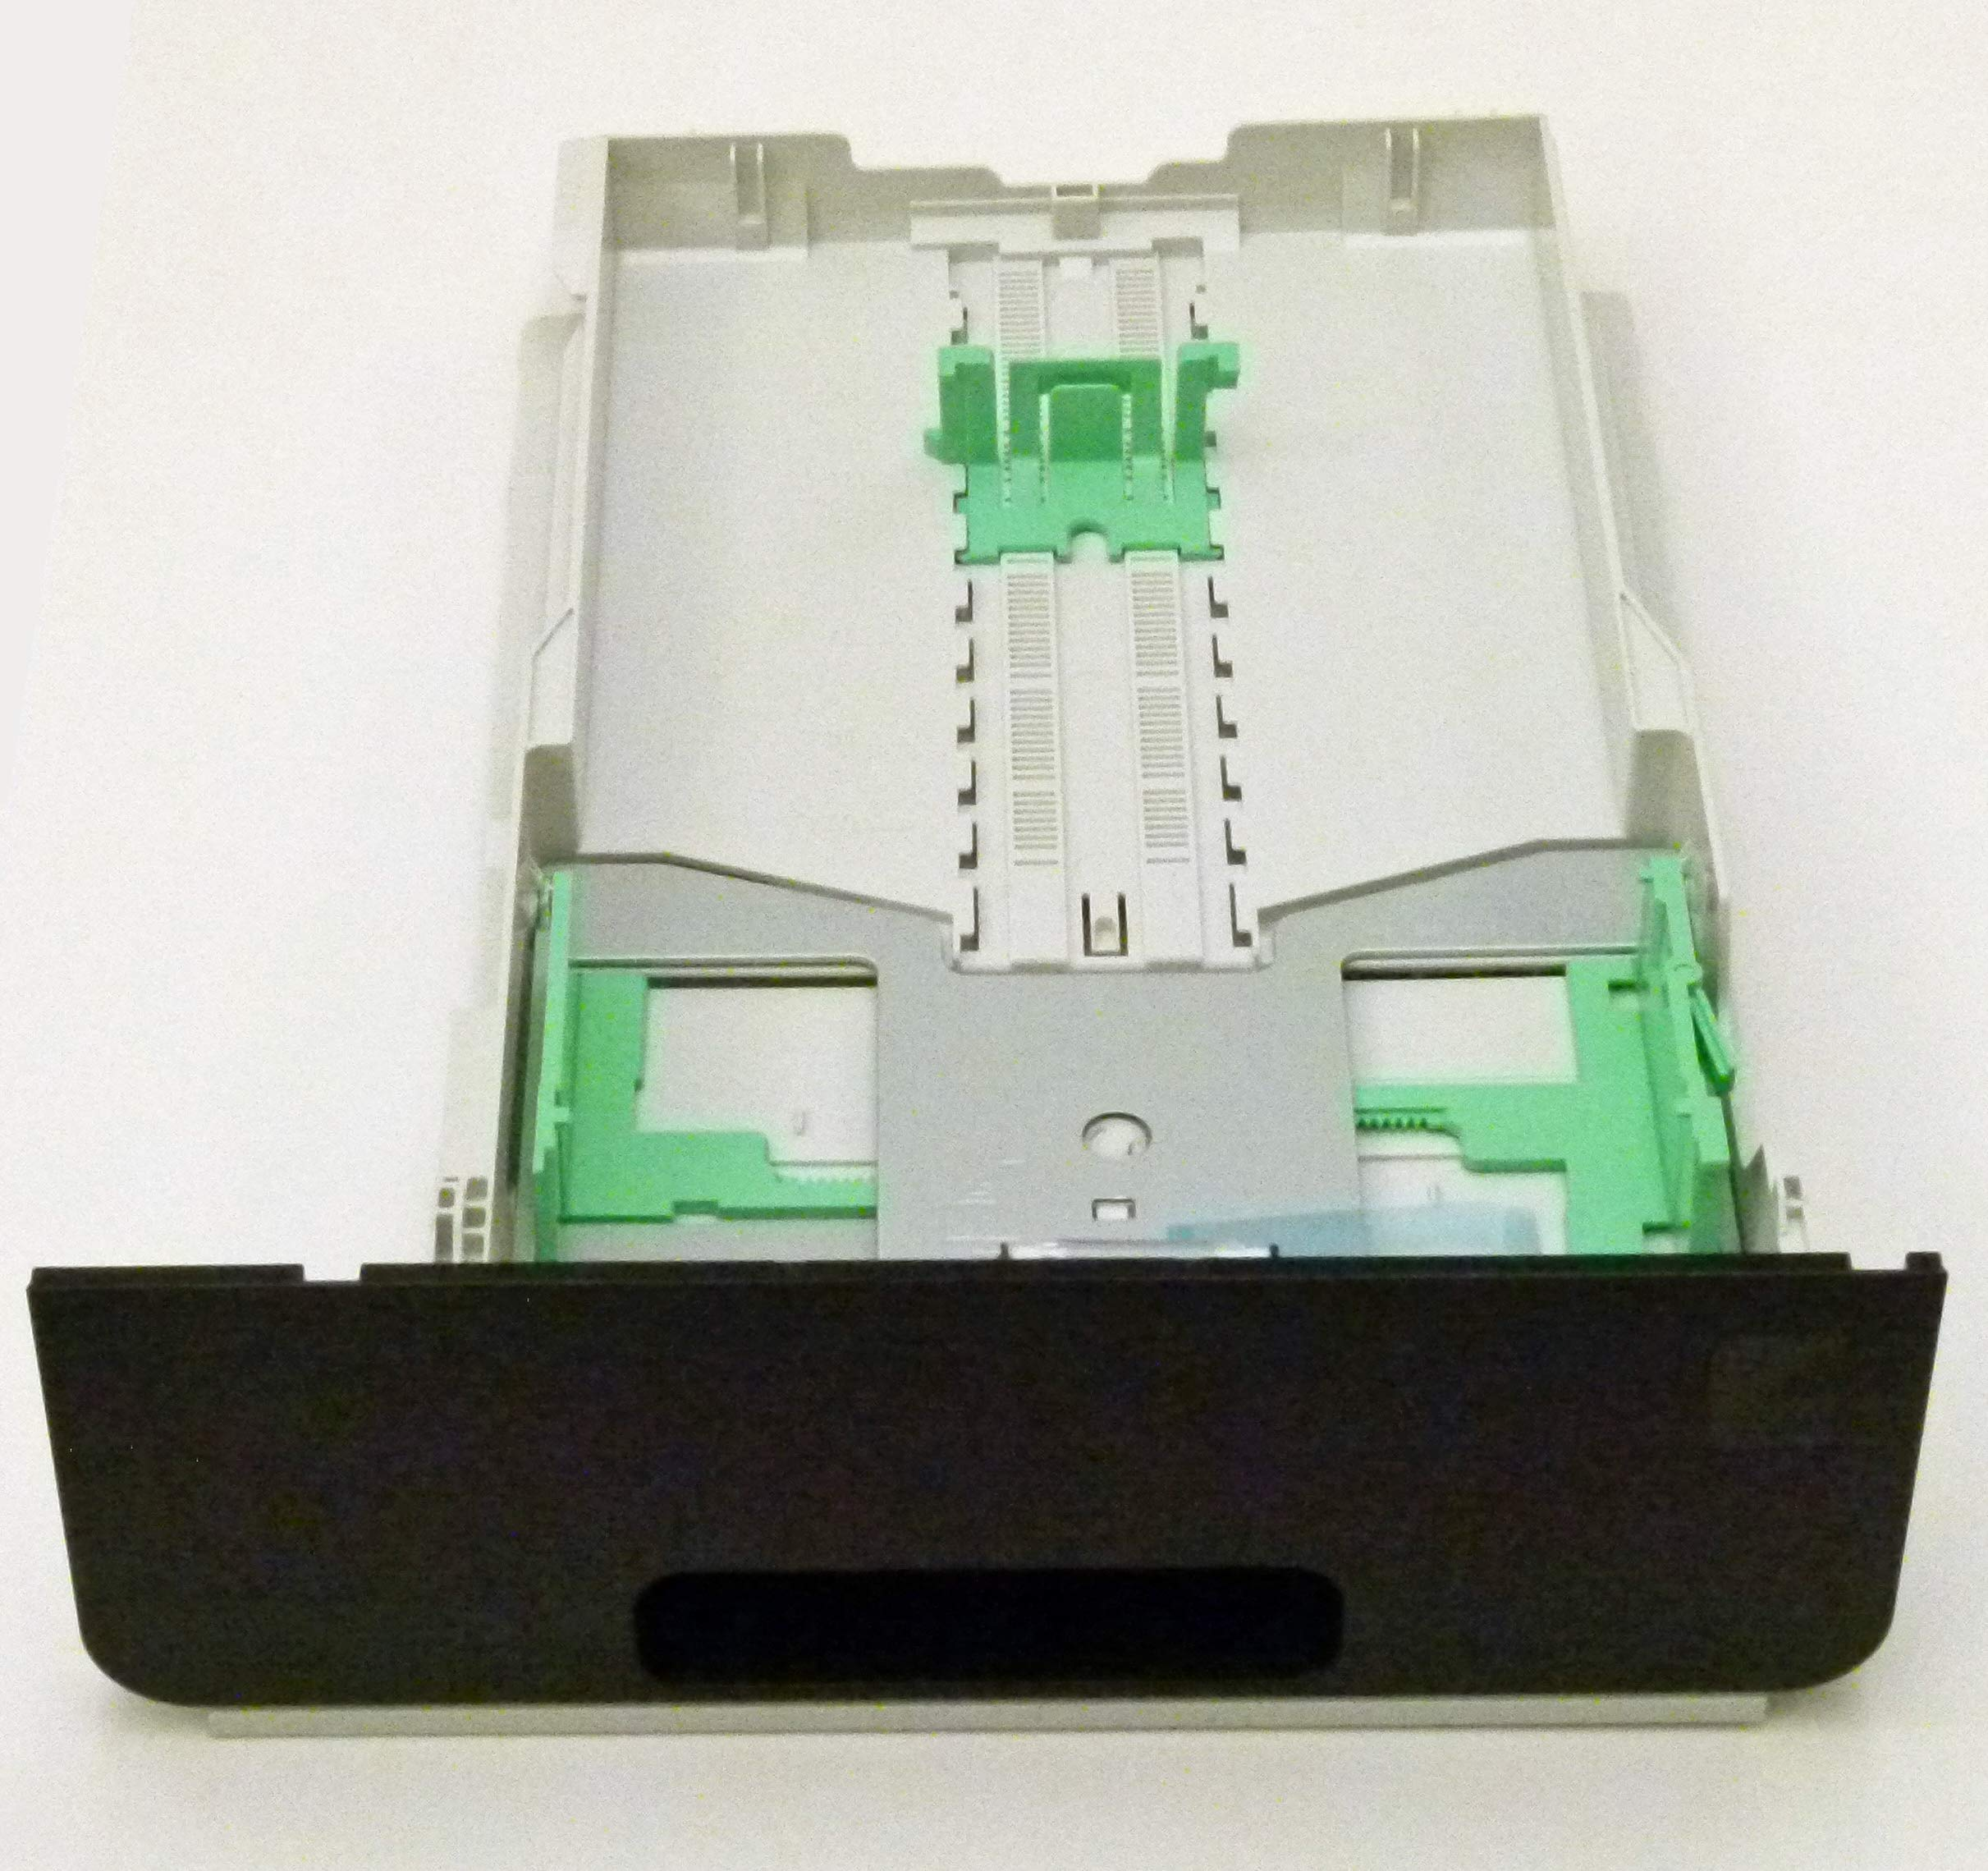 OEM Brother 250 Page Paper Cassette Tray for Brother MFC9130CW, MFC-9130CW, MFC9140CDN, MFC-9140CDN by Brother